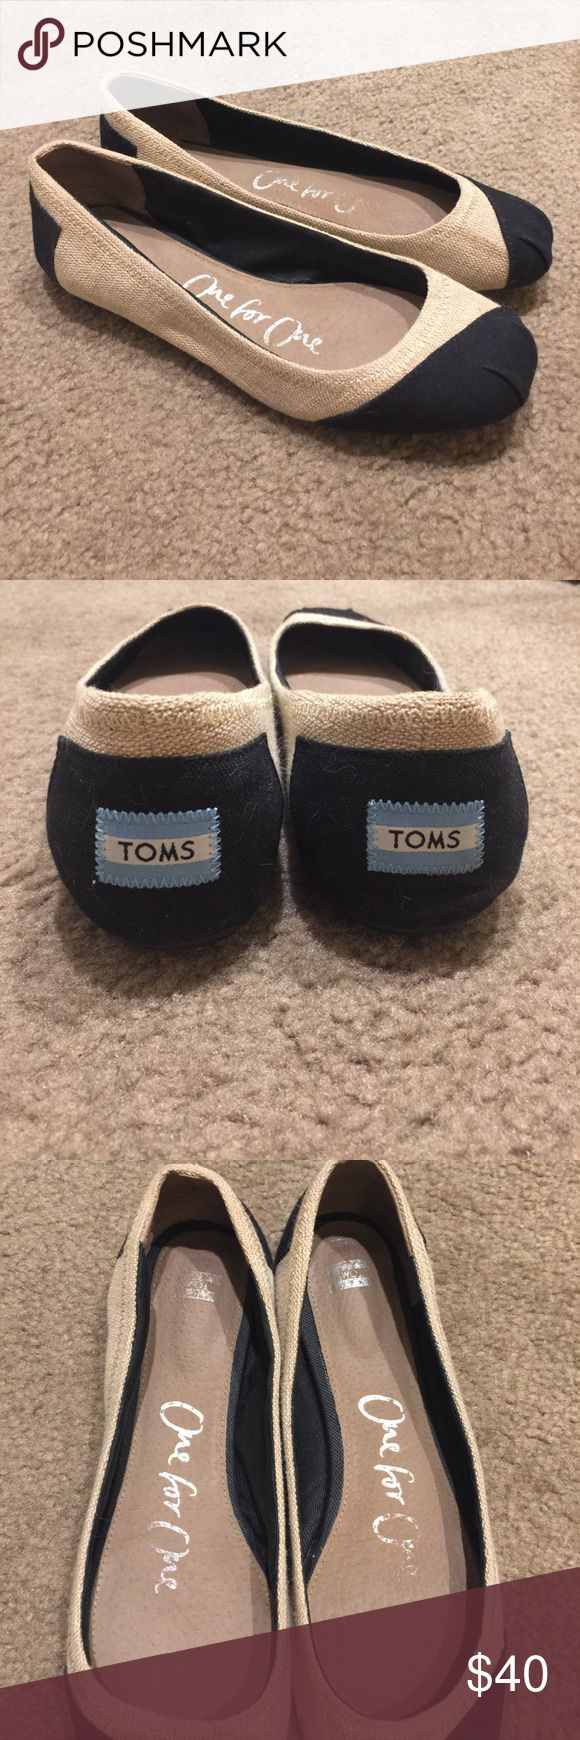 TOMS Ballet Flat - Sz 8.5 Super cute, gently used and perfect for summer.  Some crinkling on the back heel of right shoe.  I do offer a bundle discount on two or more items, so shop my closet for other great deals! 🙌🏻😃 TOMS Shoes Flats & Loafers